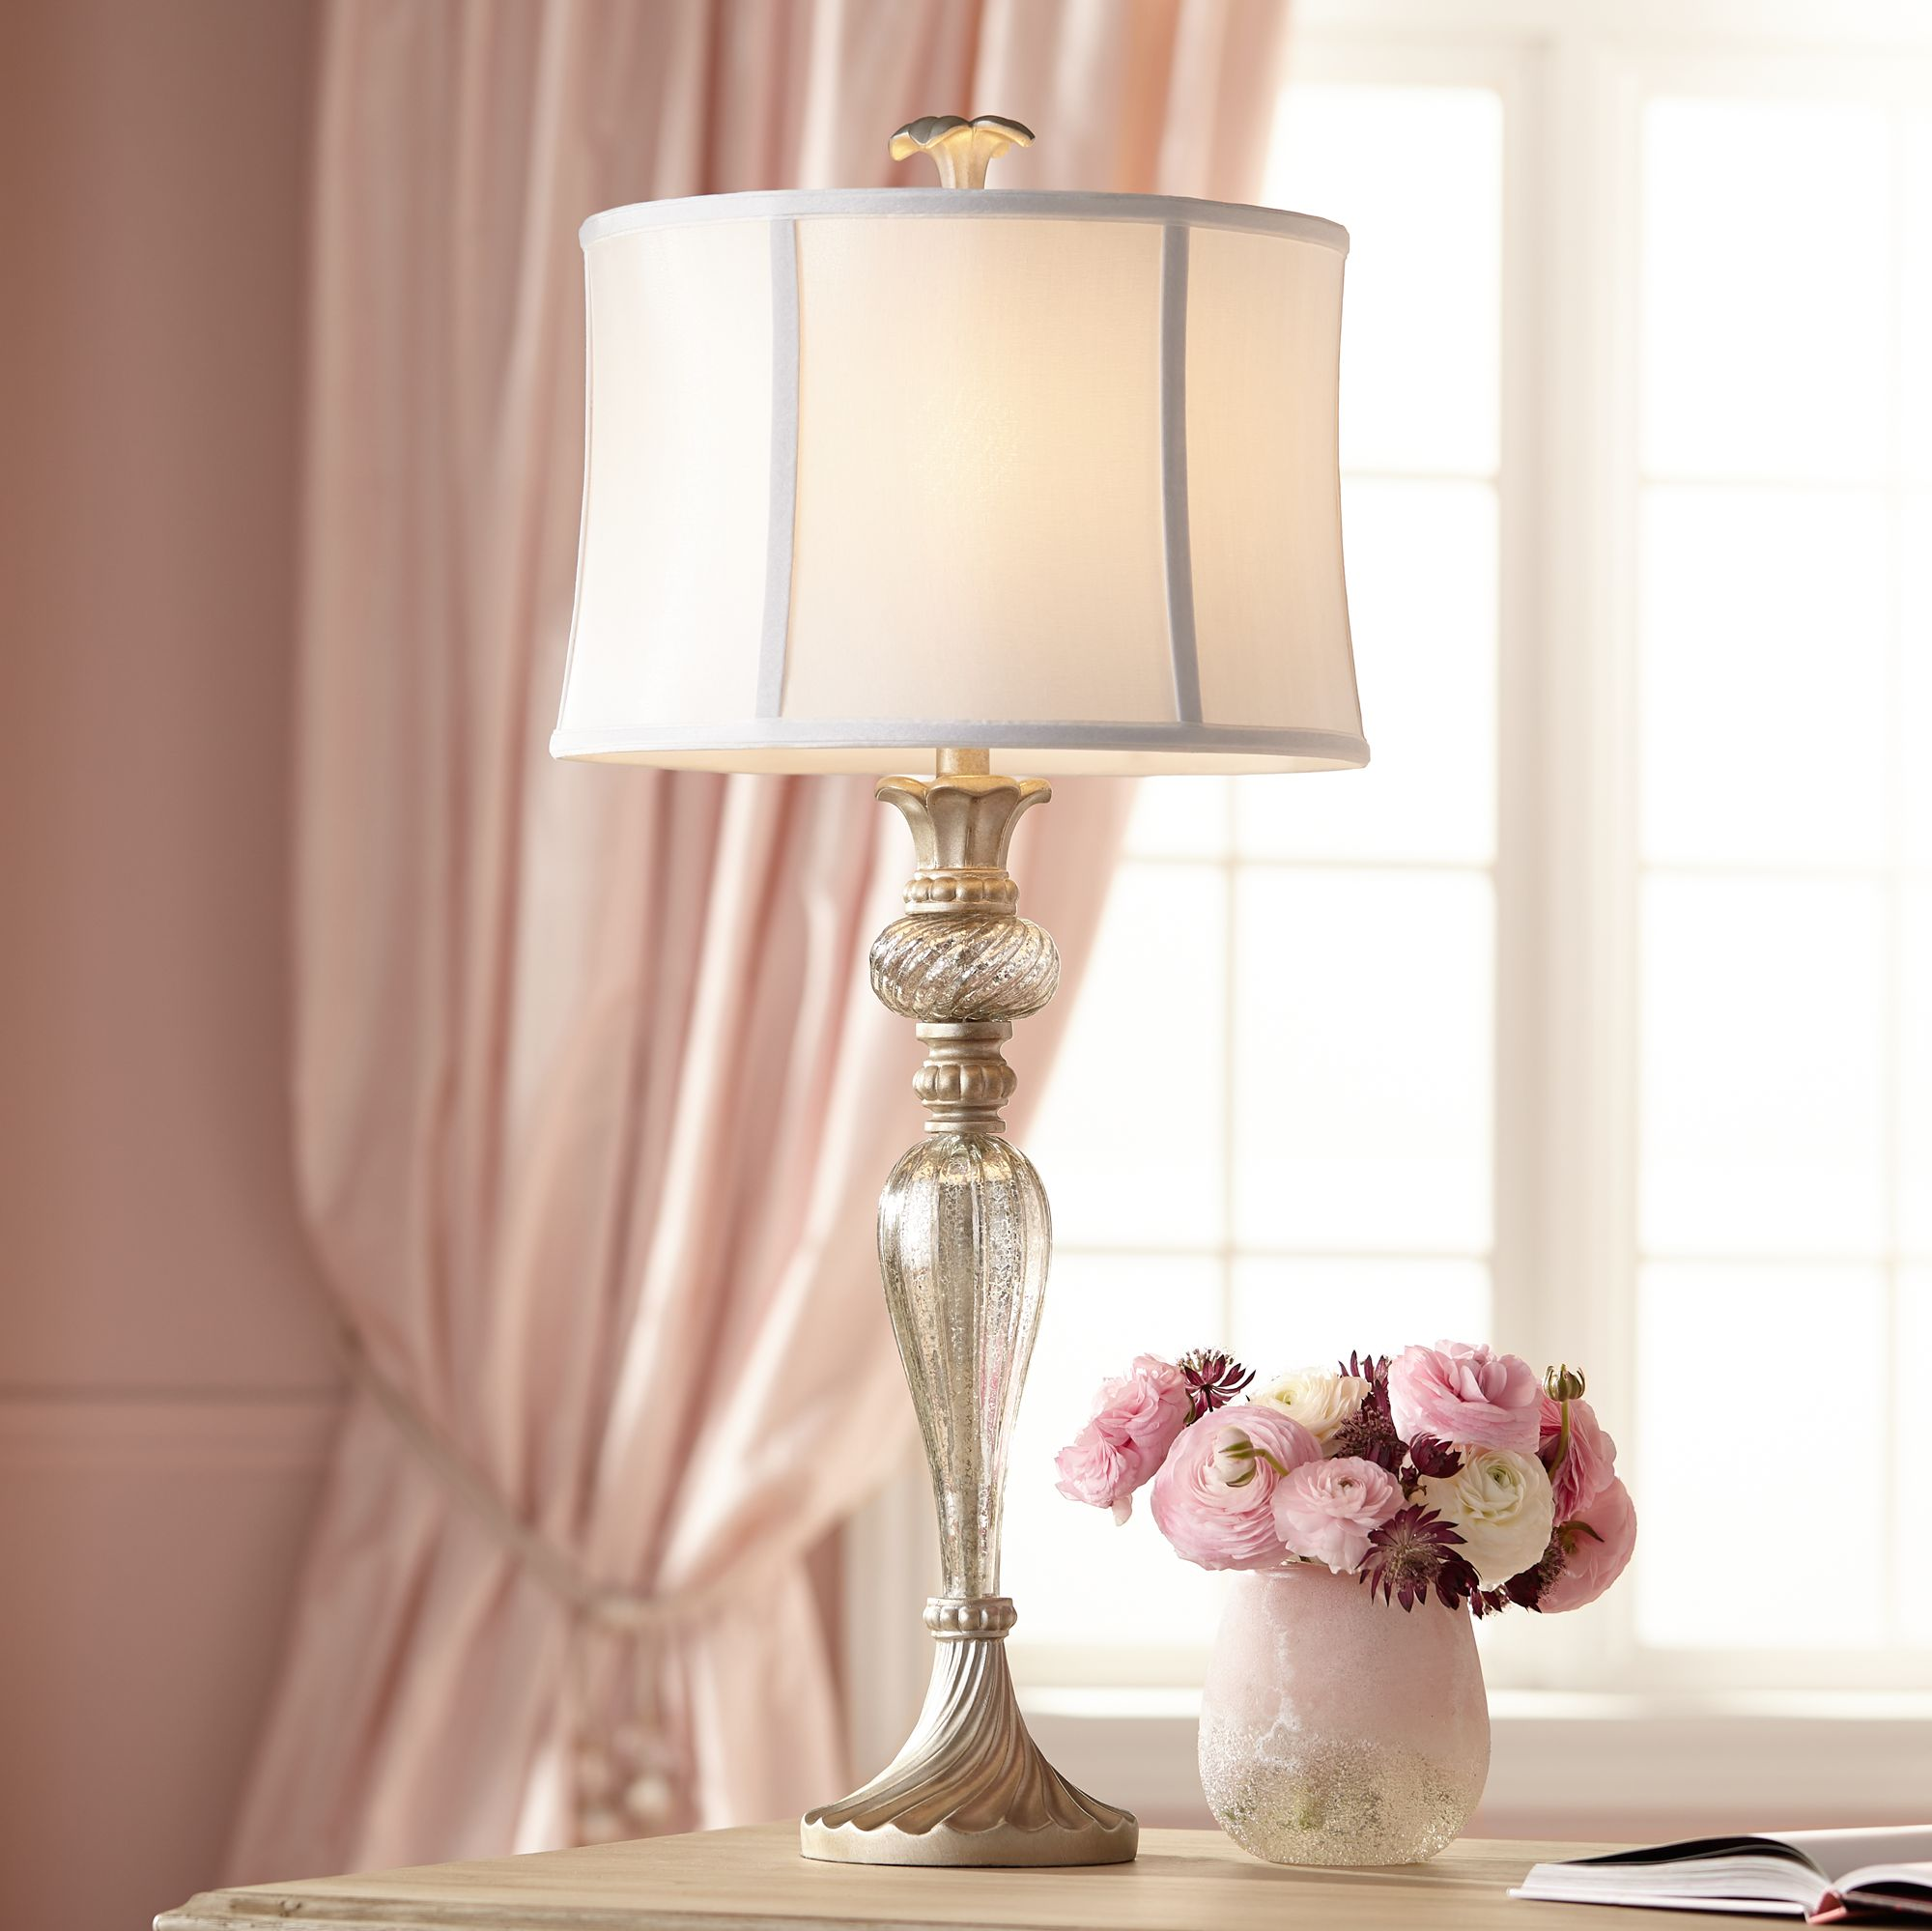 alyson mercury glass table lamp by regency hill - Mercury Glass Table Lamp